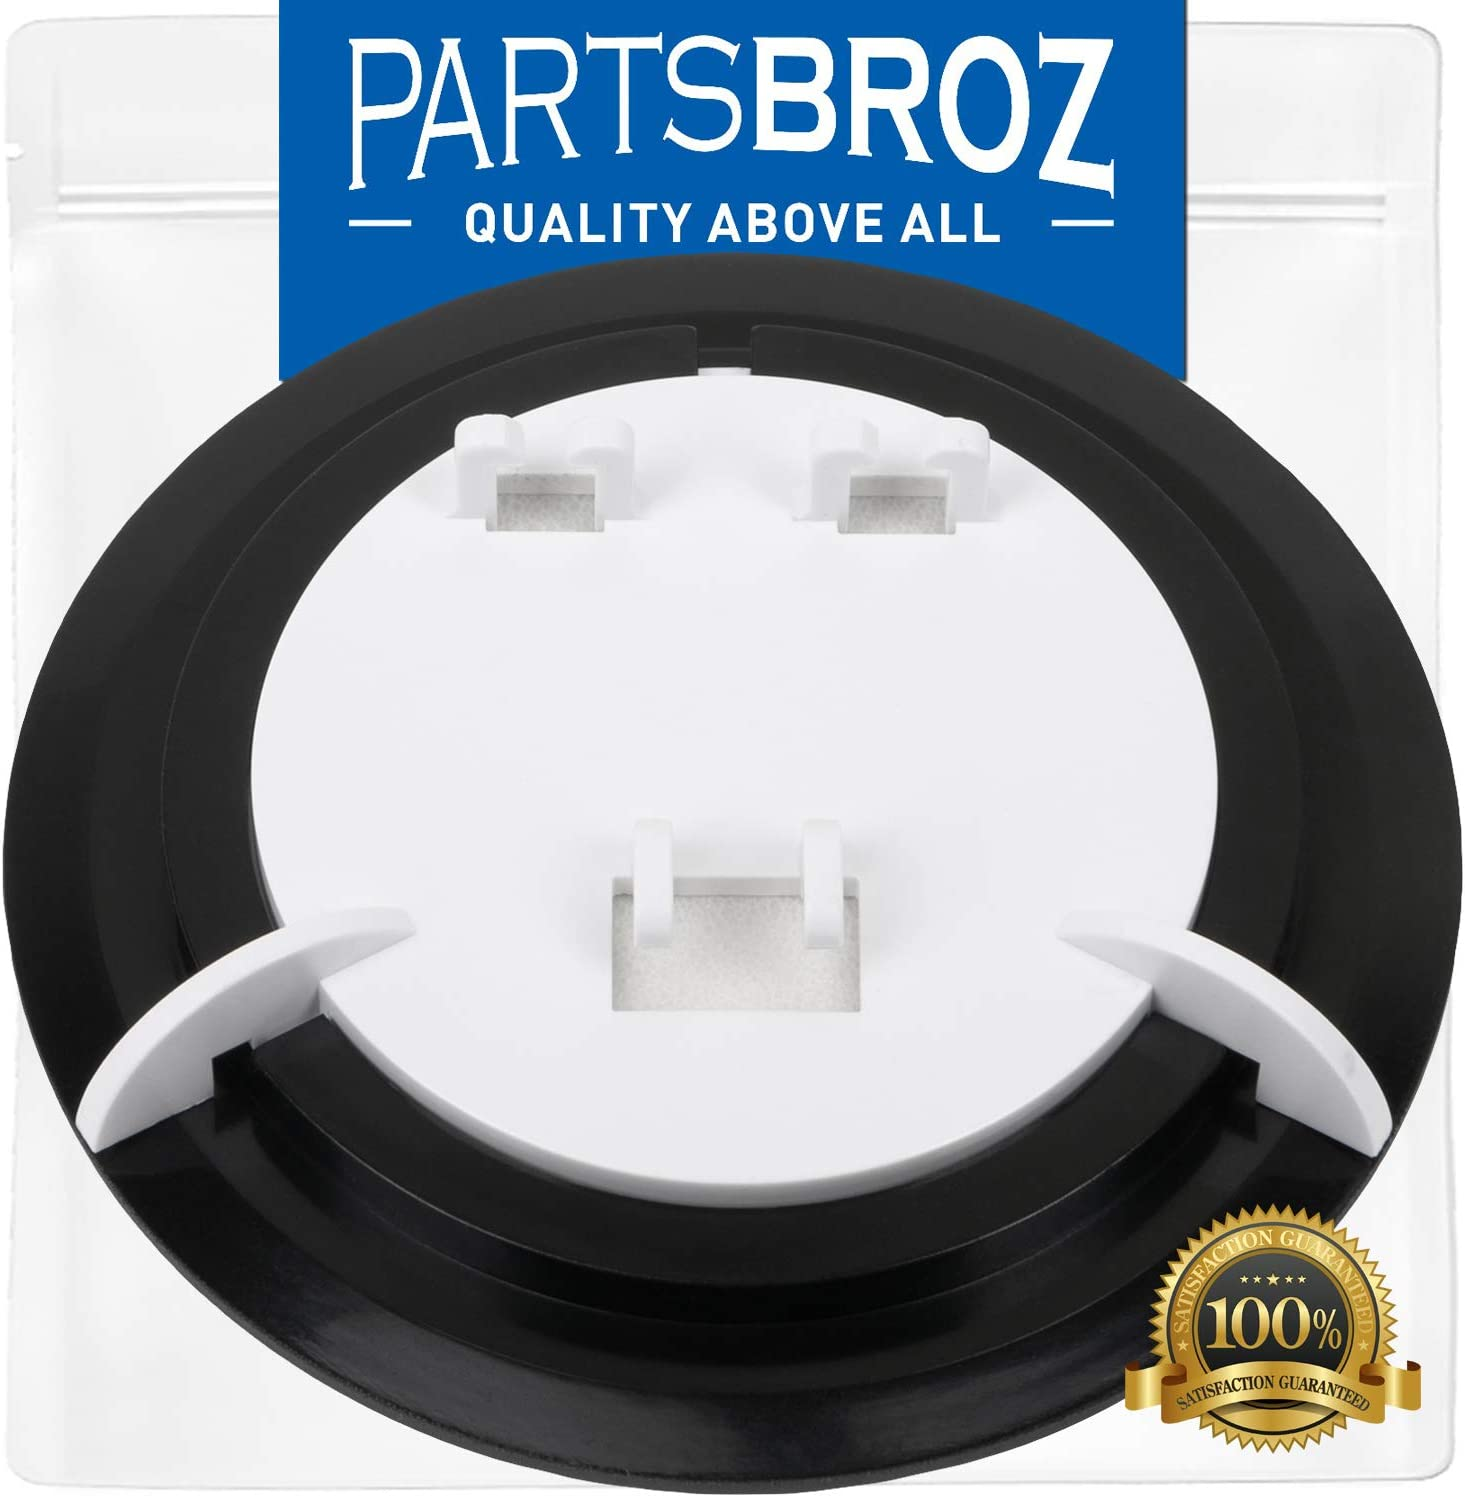 WR17X11653 Ice Door Flapper by PartsBroz - Compatible with GE Refrigerators - Replaces AP3672582, 1032671, AH964304, EA964304, PS964304, WR17X3093, WR17X3492